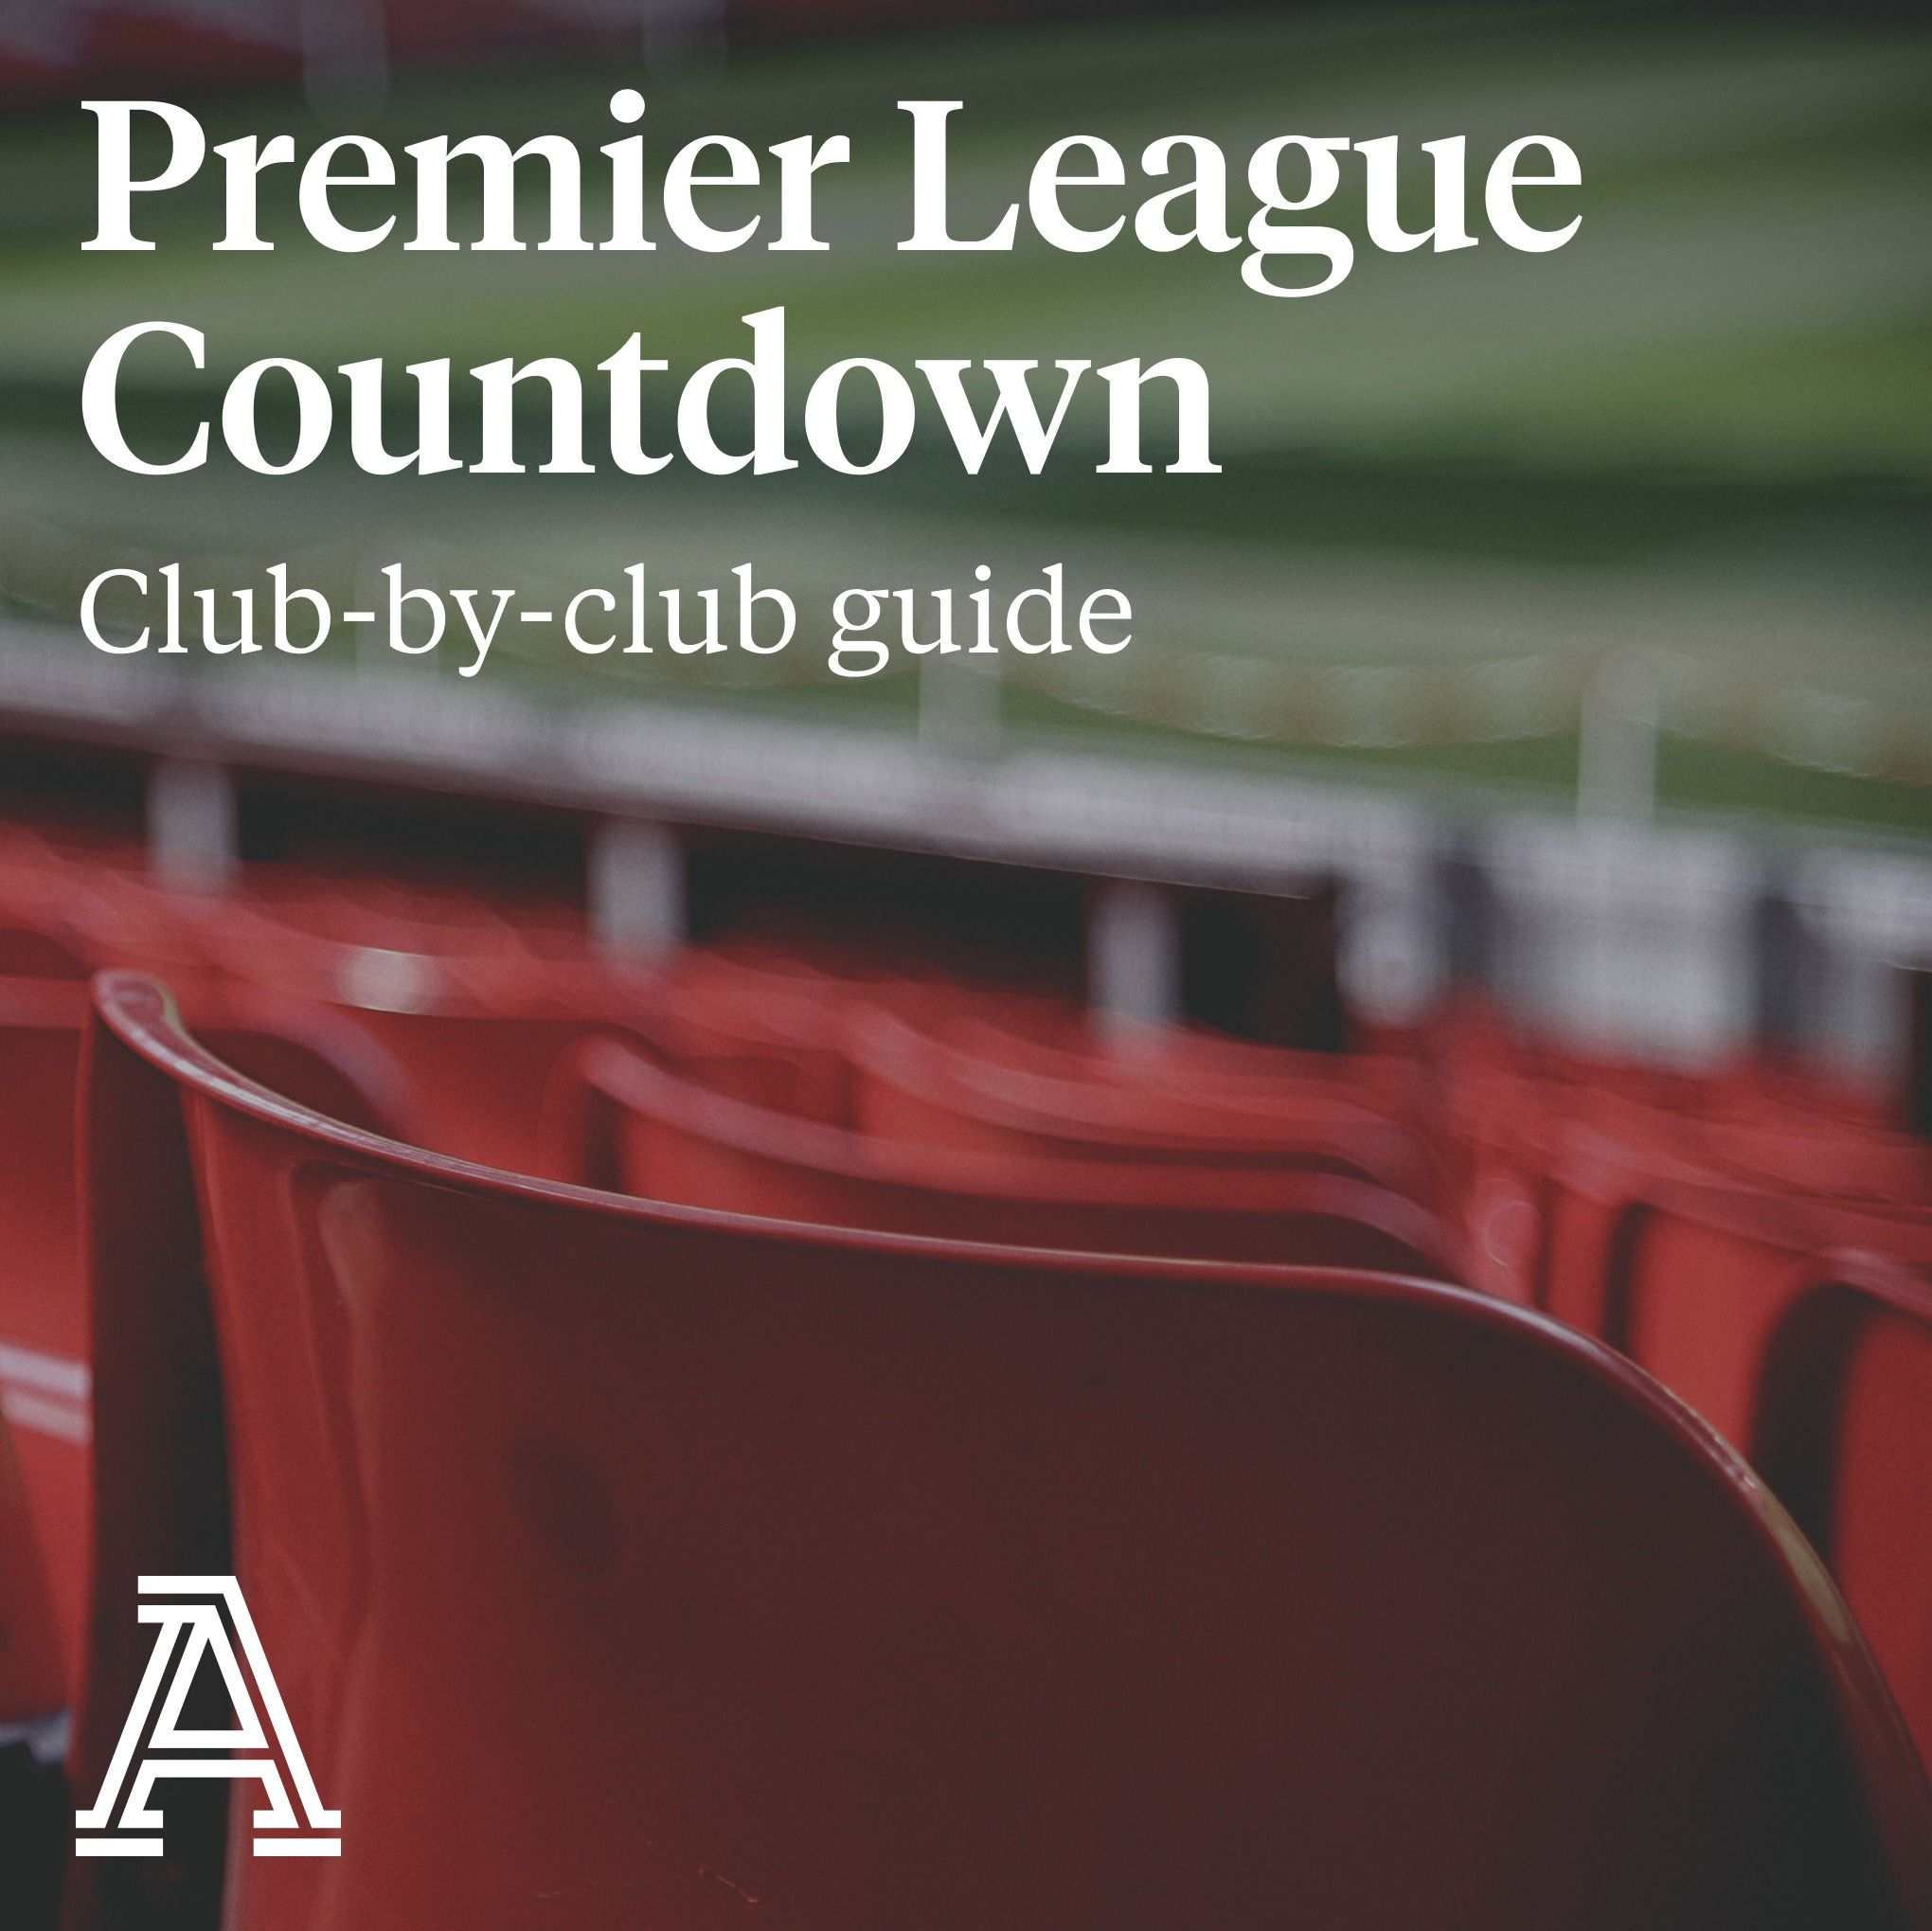 Premier League Countdown - Southampton